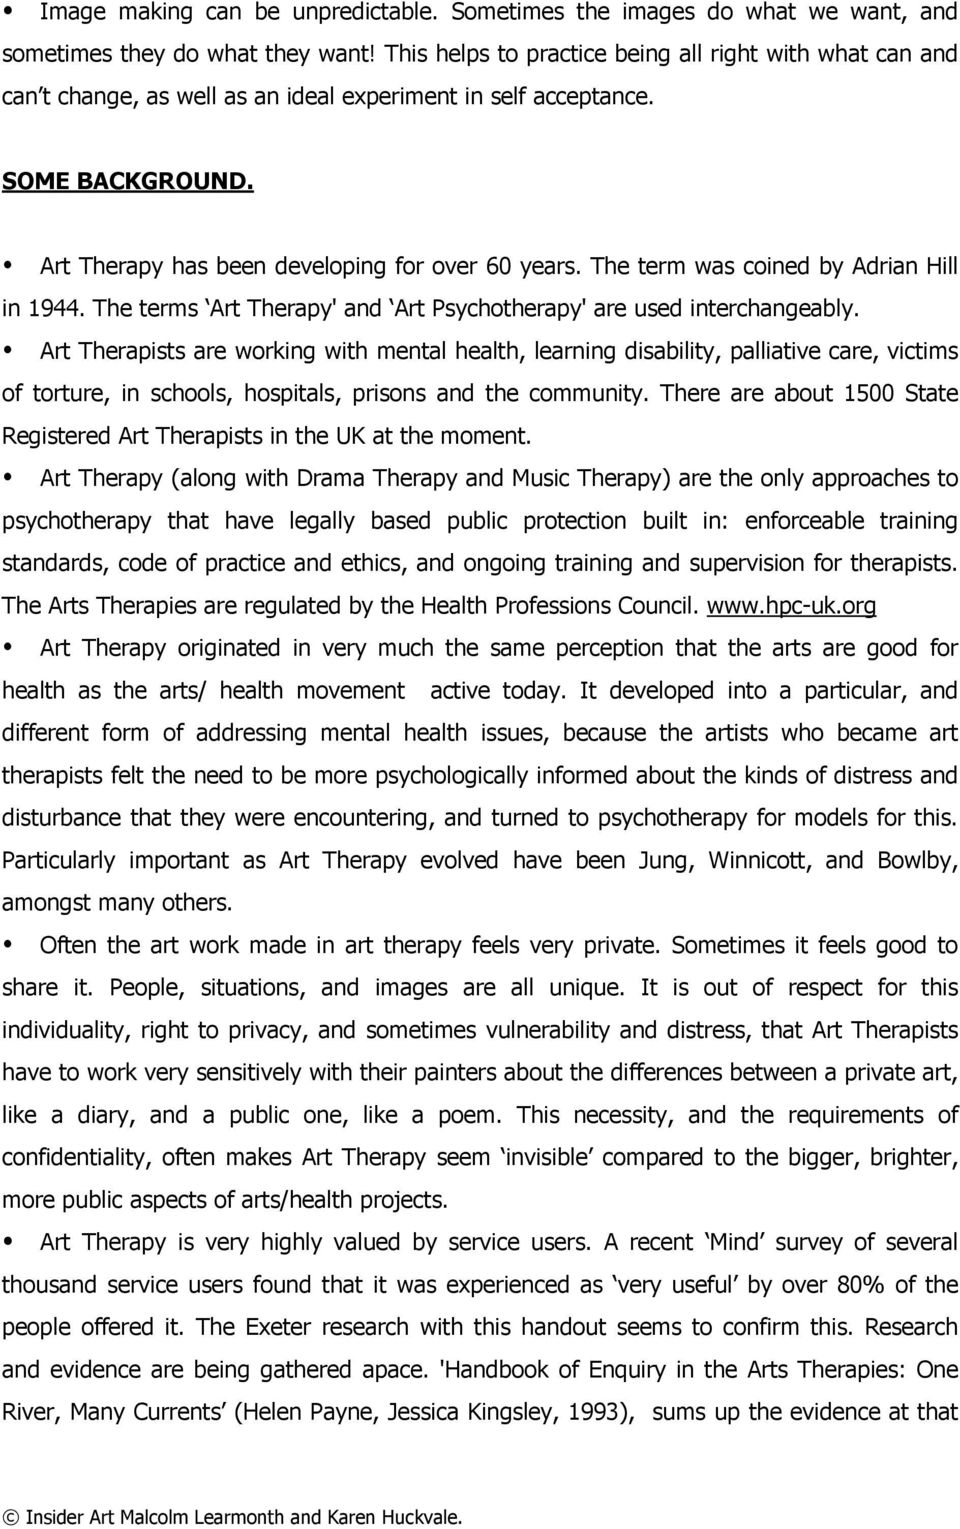 The term was coined by Adrian Hill in 1944. The terms Art Therapy' and Art Psychotherapy' are used interchangeably.